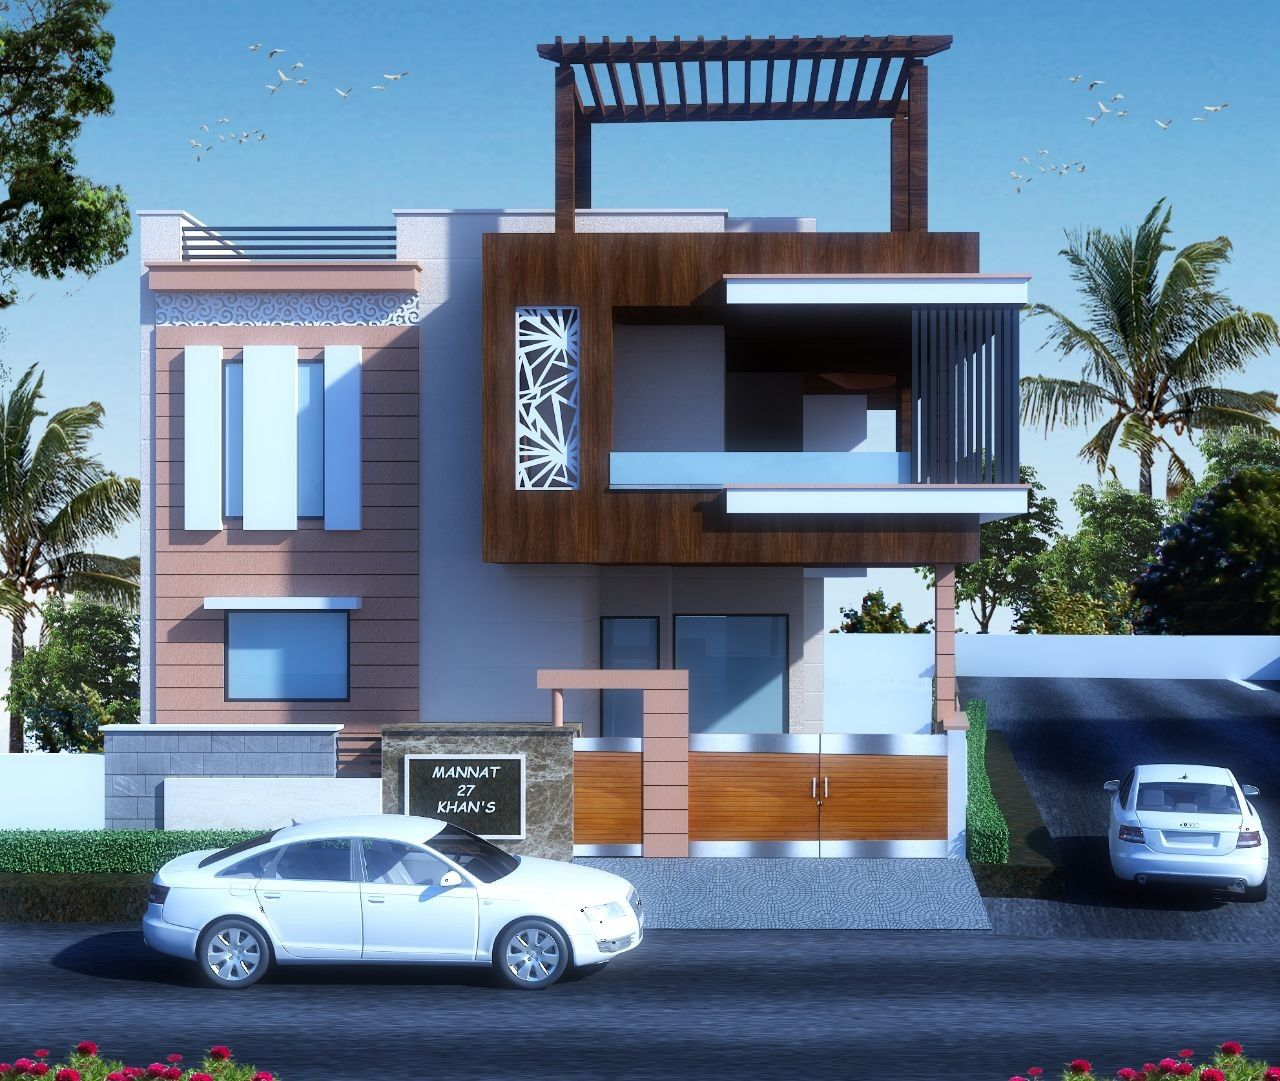 Building elevation modern houses lazy homes house design contemporary also best  new ideas images in rh pinterest